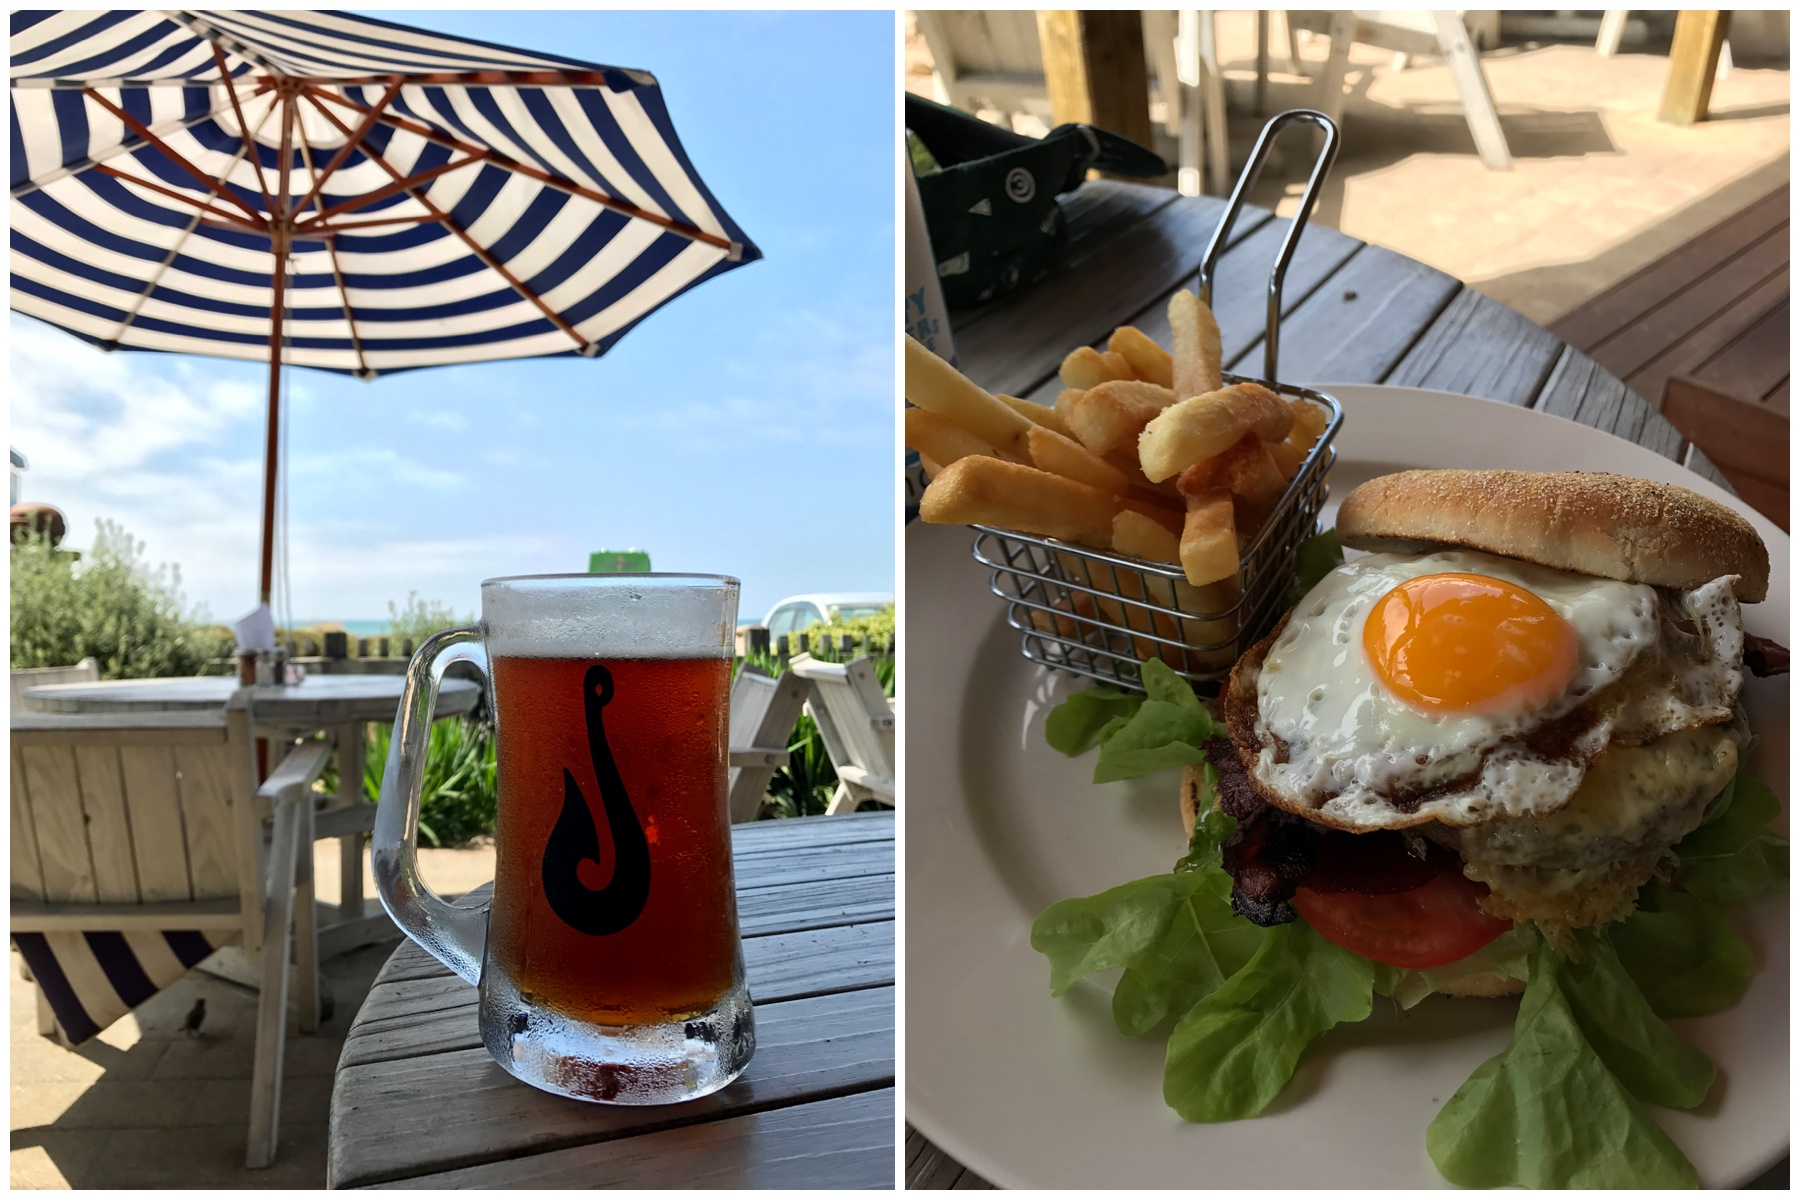 But seriously, a burger and beer after hiking is so necessary. The Hooked Cafe is conveniently located right outside the park.